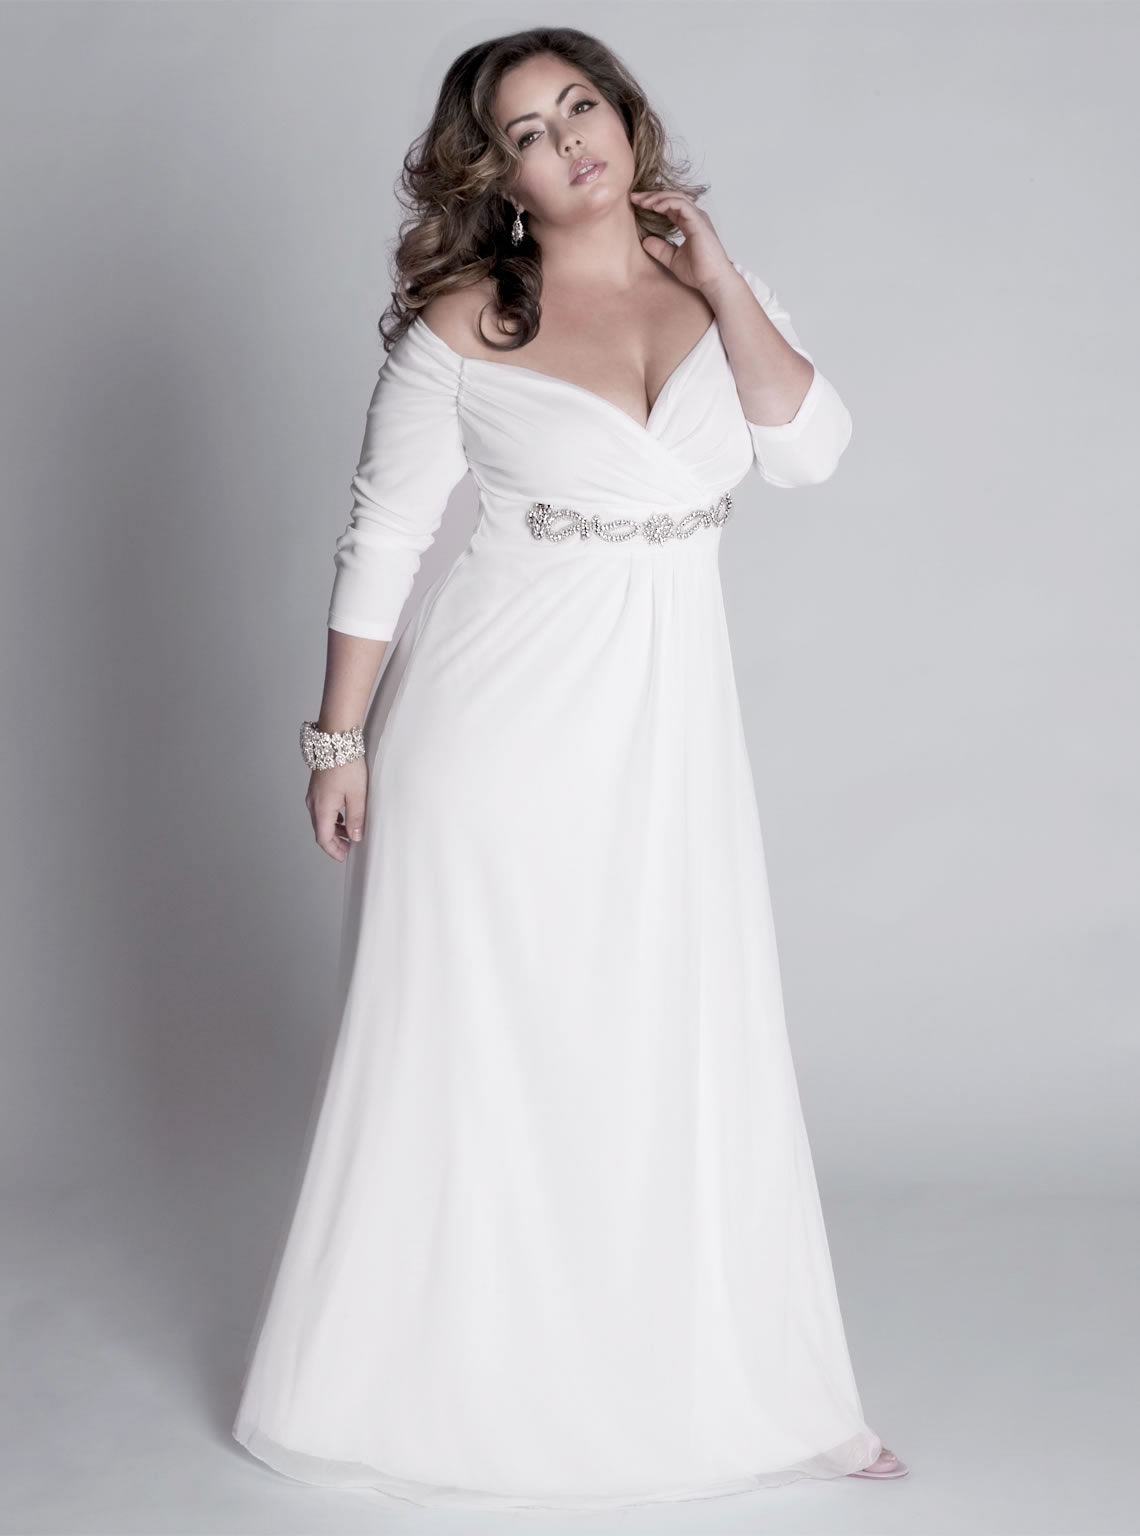 Top Designers for Plus Size Wedding Dresses | BravoBride